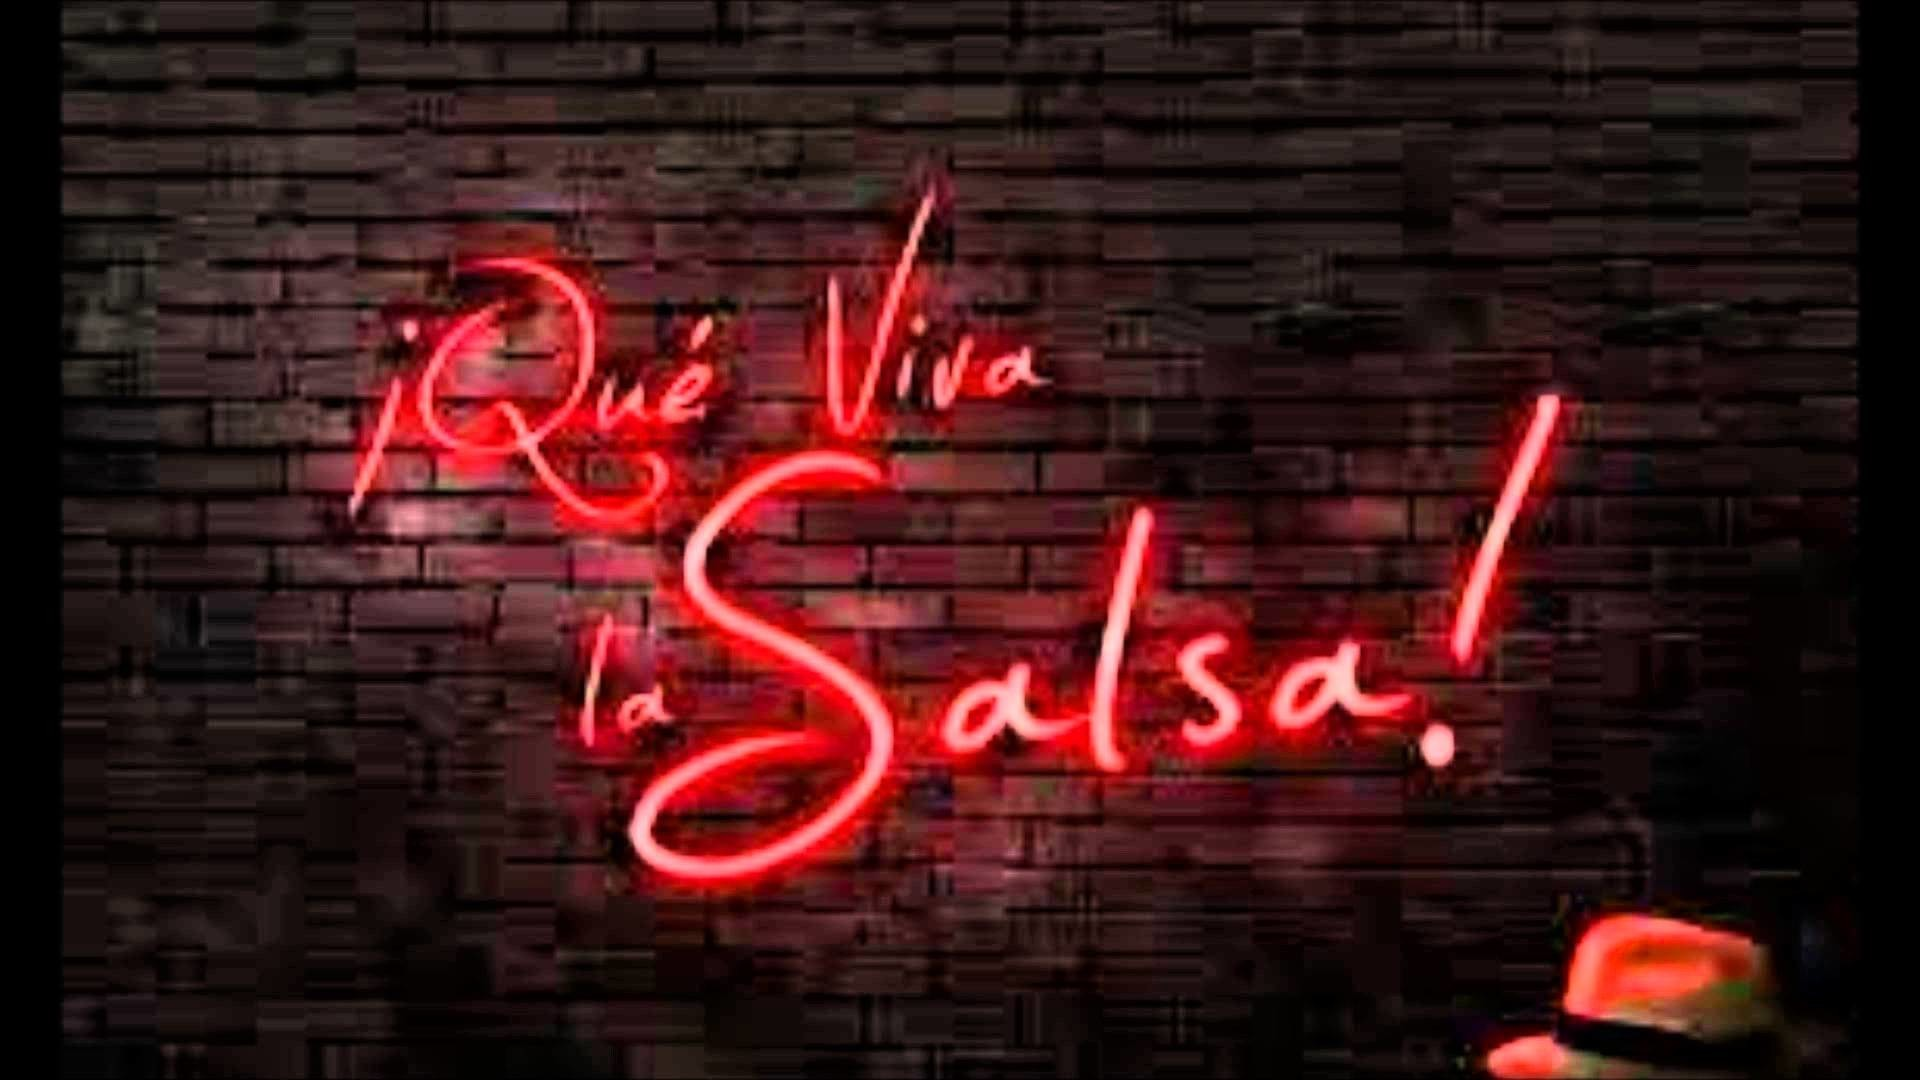 Salsa Wallpapers 47 images 1920x1080